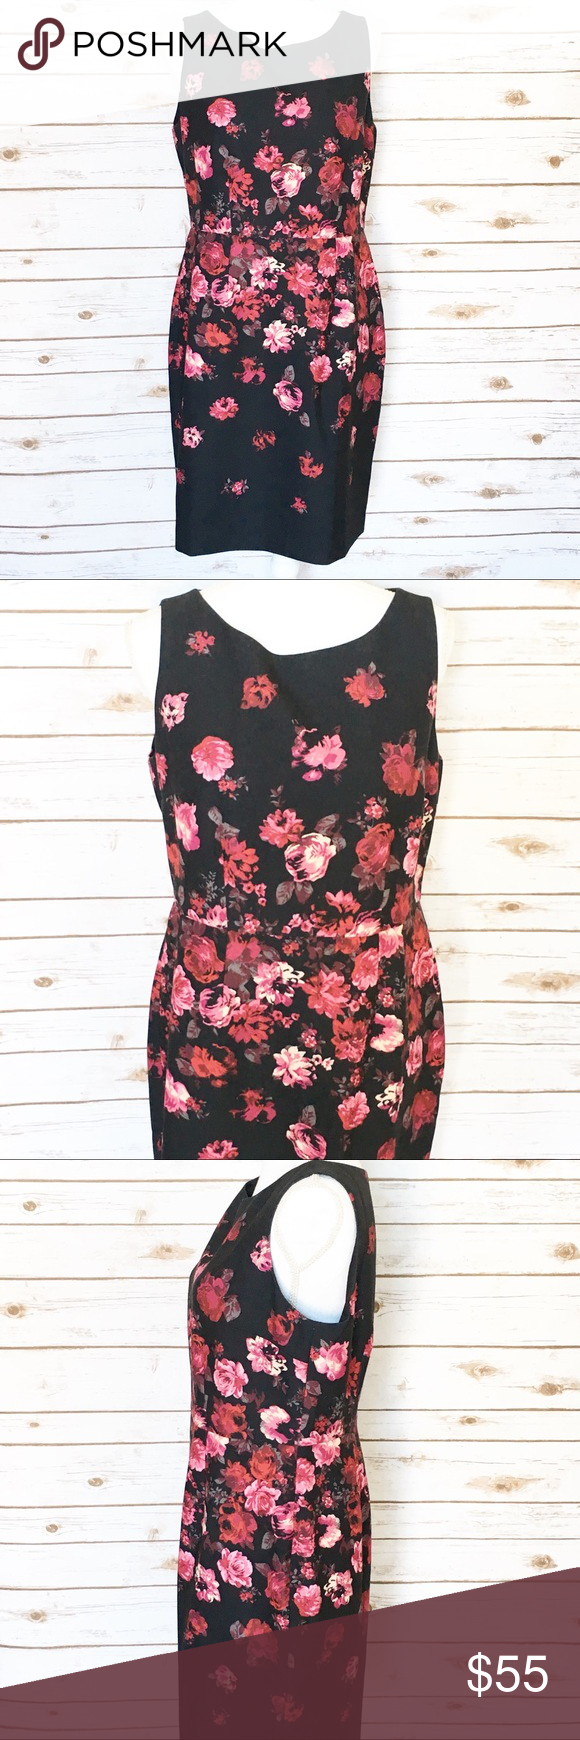 Talbots black floral sheath dress pretty pink and red roses on black